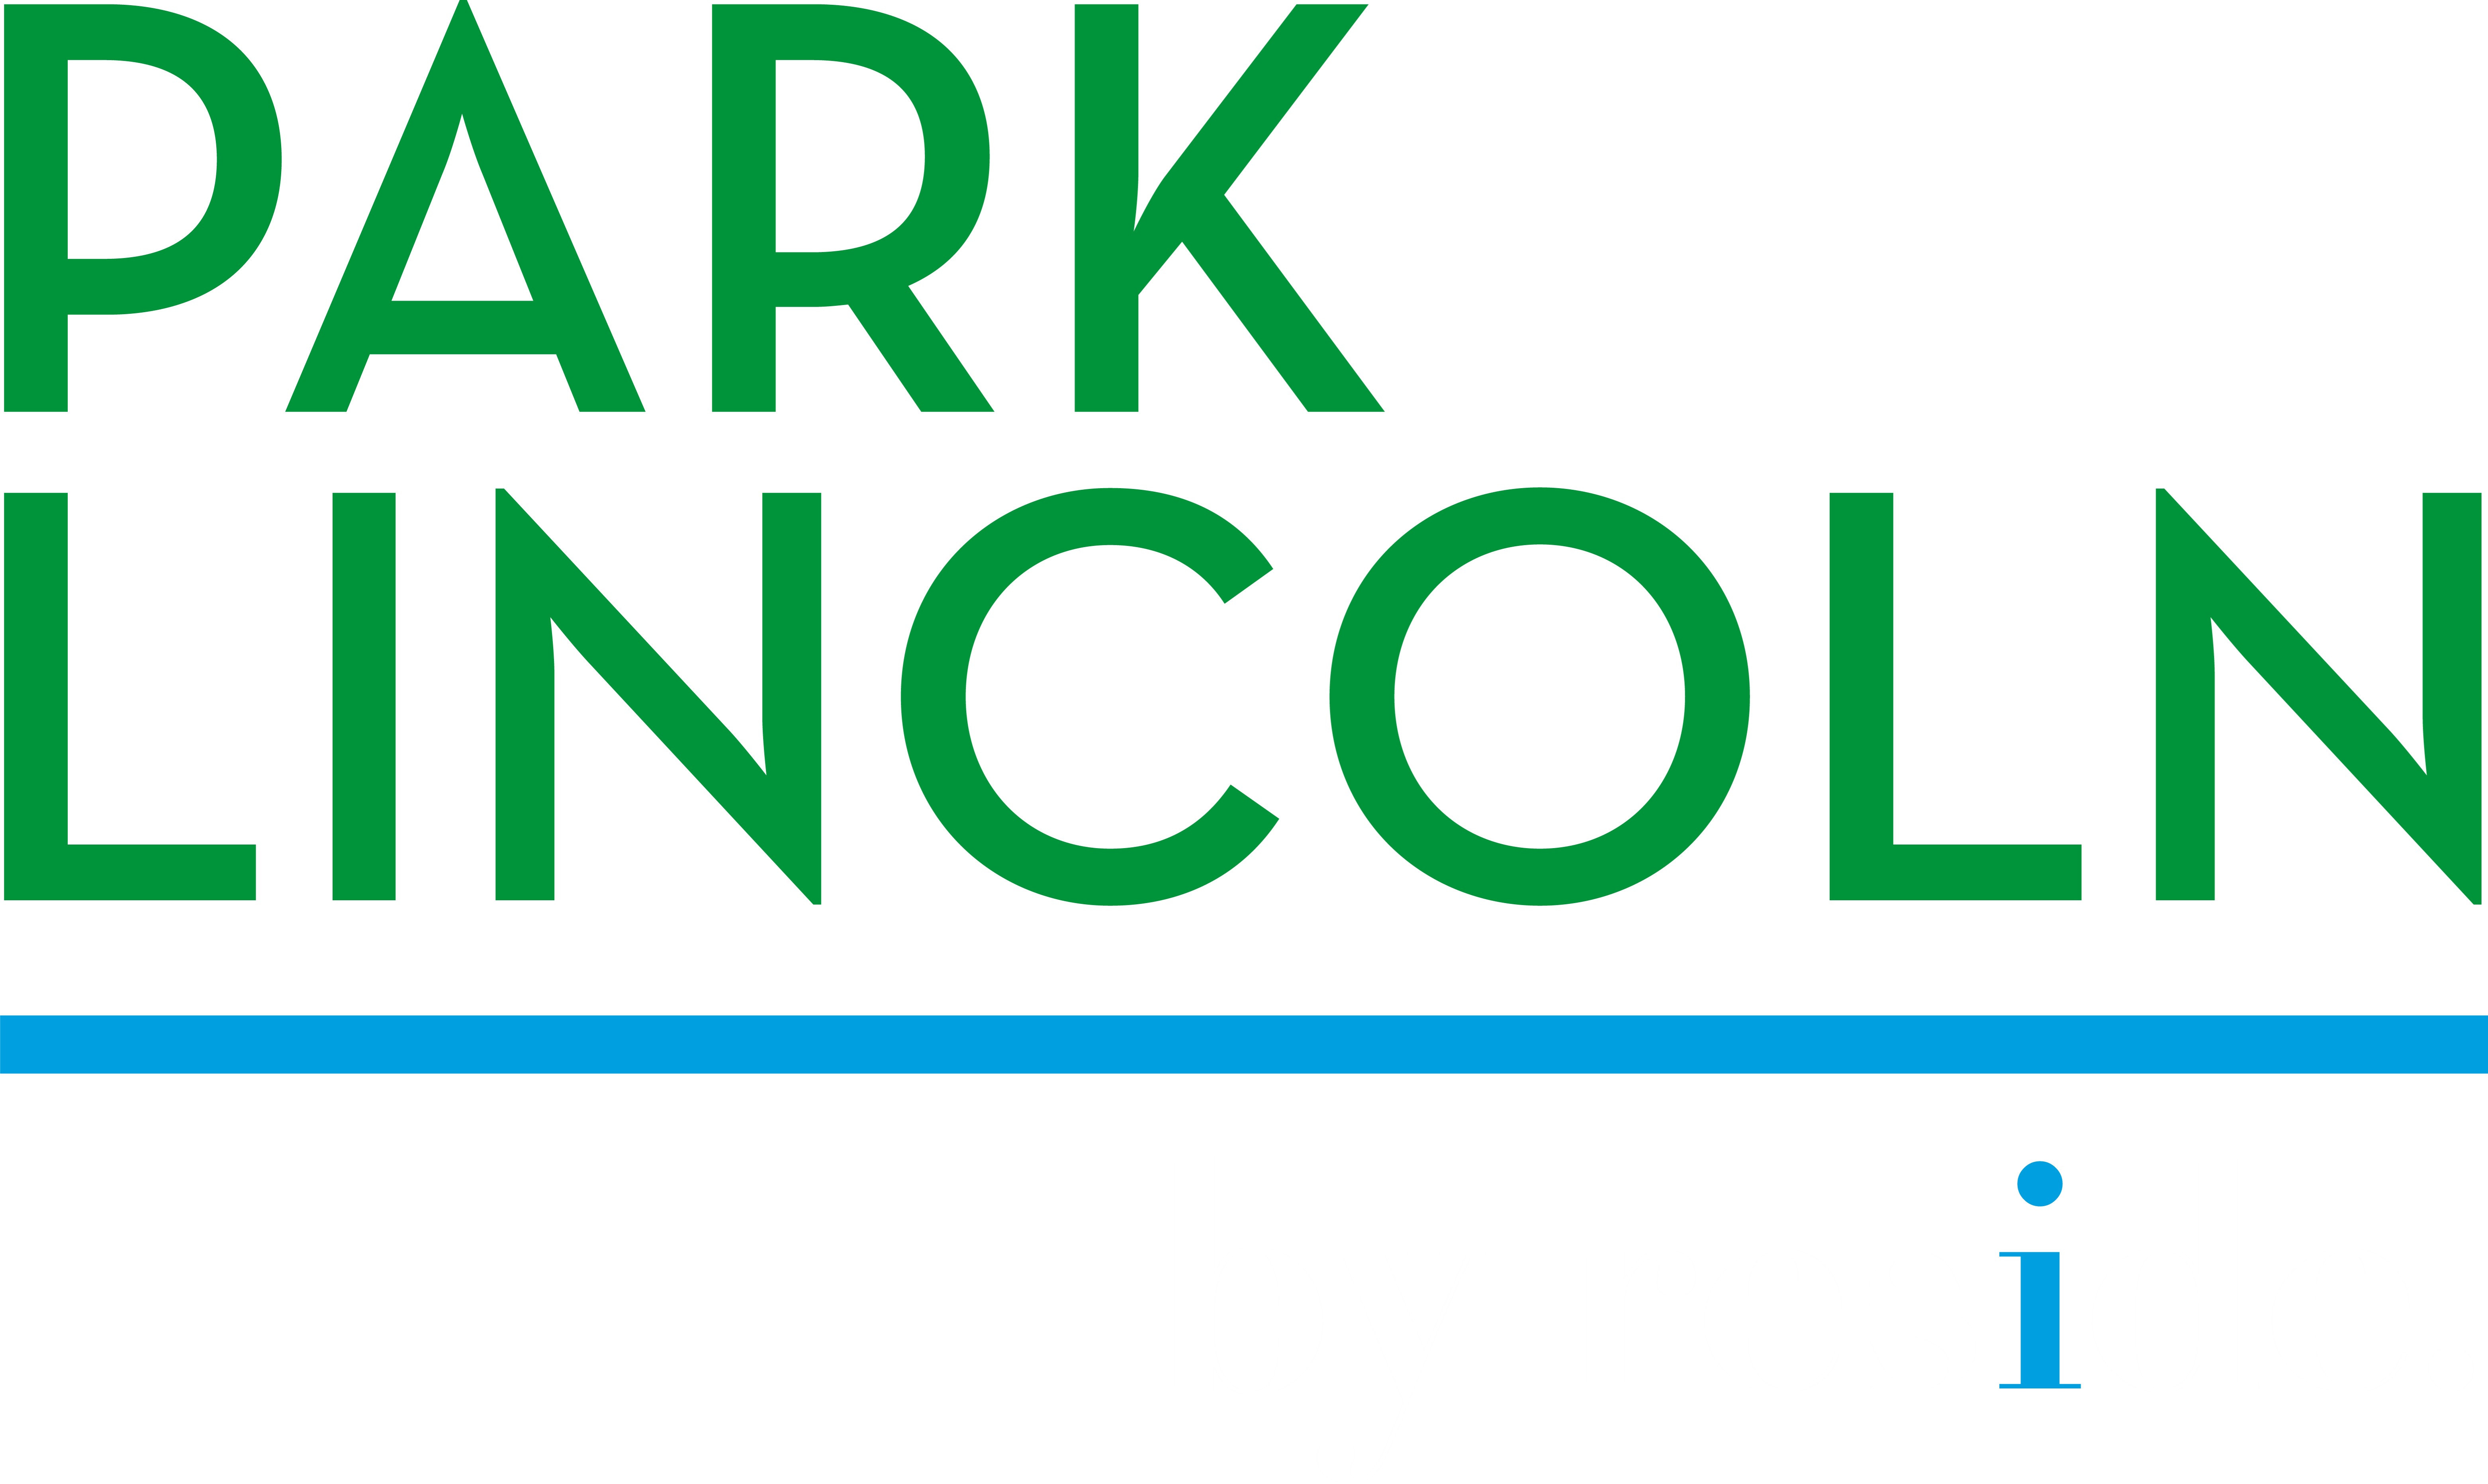 Park Lincoln by Reside | Lincoln Park Neighborhood Map & Directions